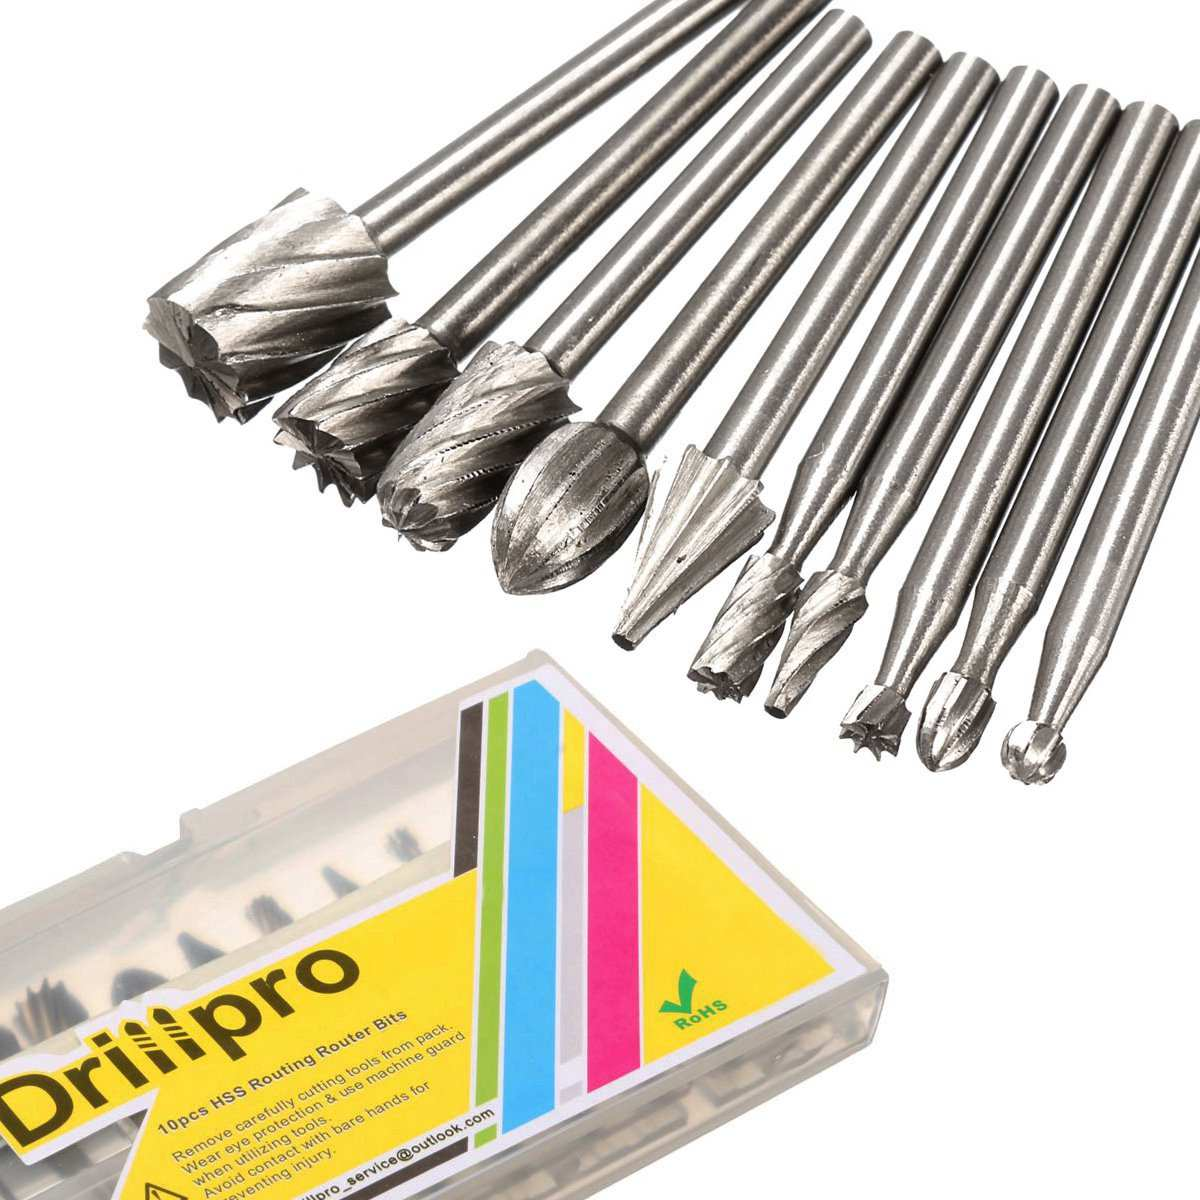 Drillpro 10pcs 3.175mm HSS Routing Router Bits Burr Milling Cutter For Dremel And Rotary Engraving Machine Tools Accessories